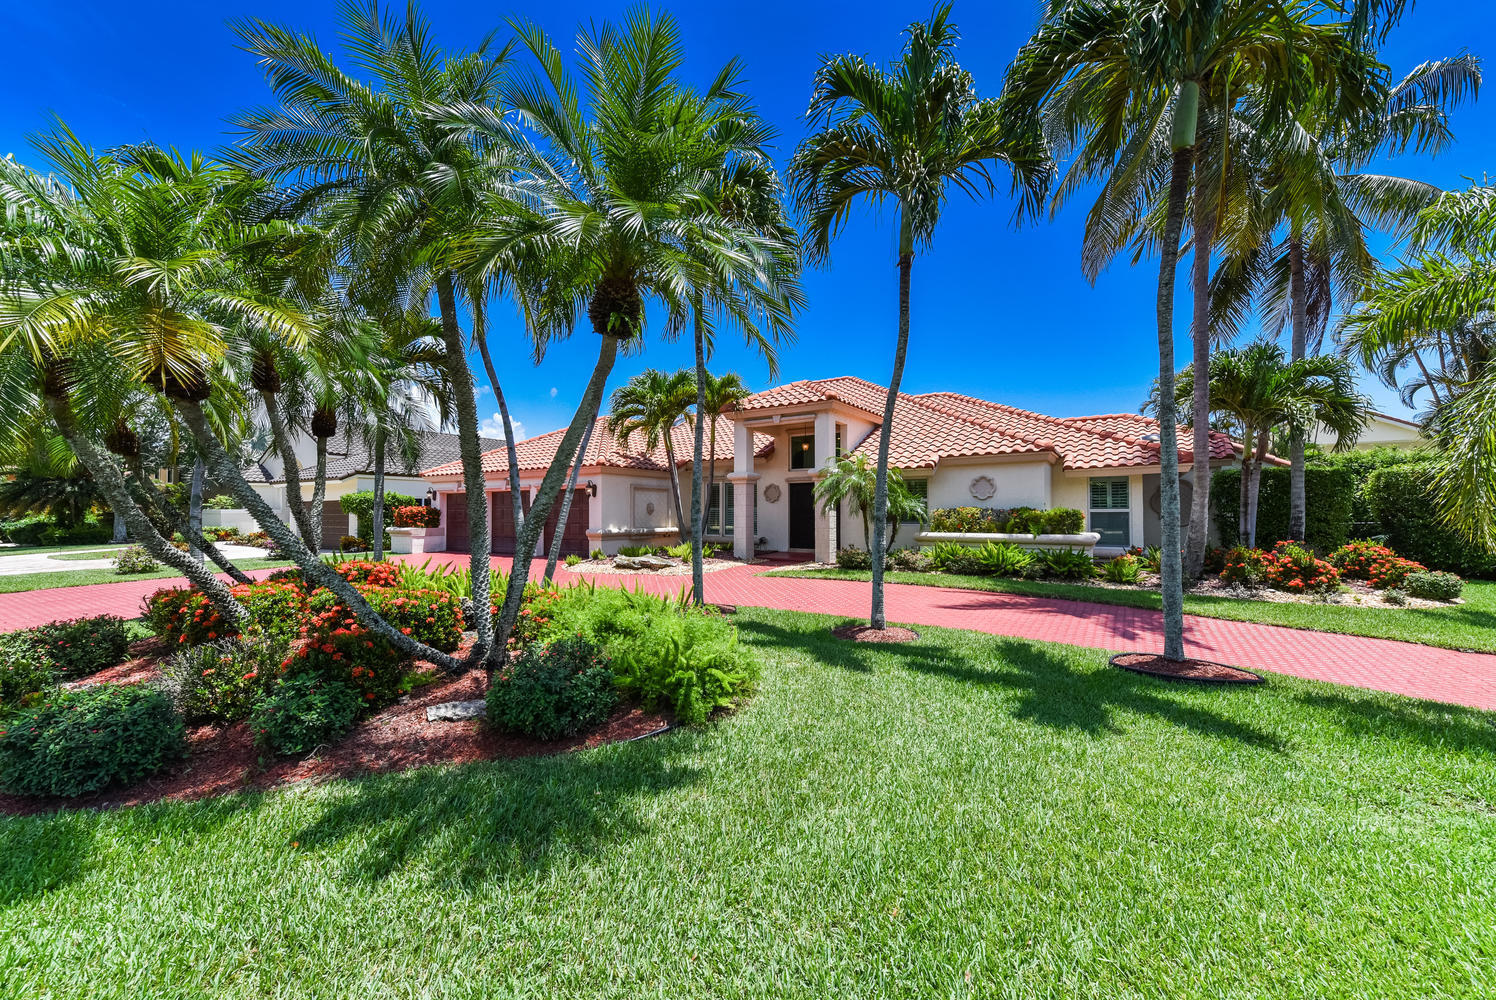 Home for sale in Cloisters Boca Raton Florida